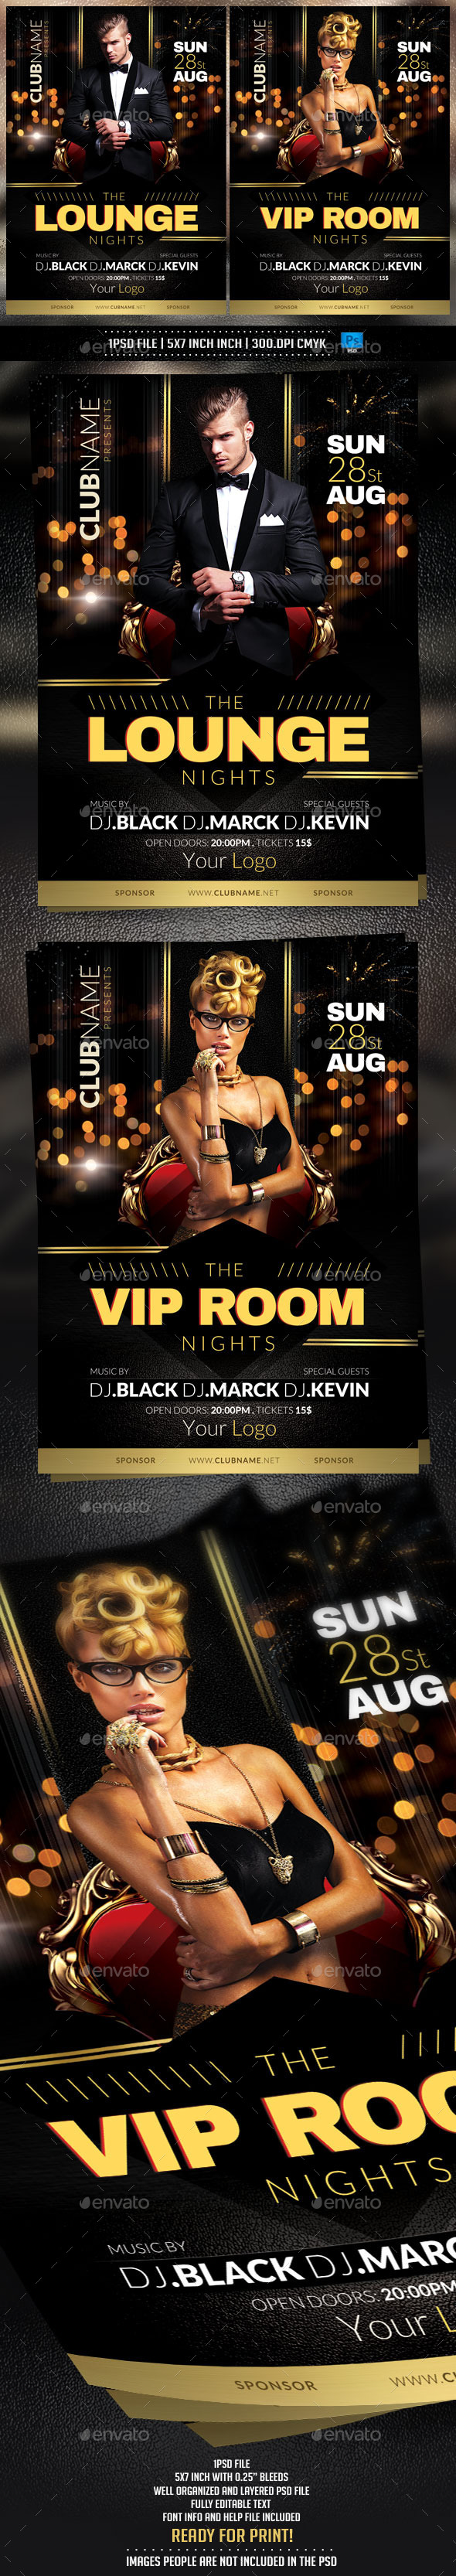 Lounge Nights Flyer Template - Clubs & Parties Events